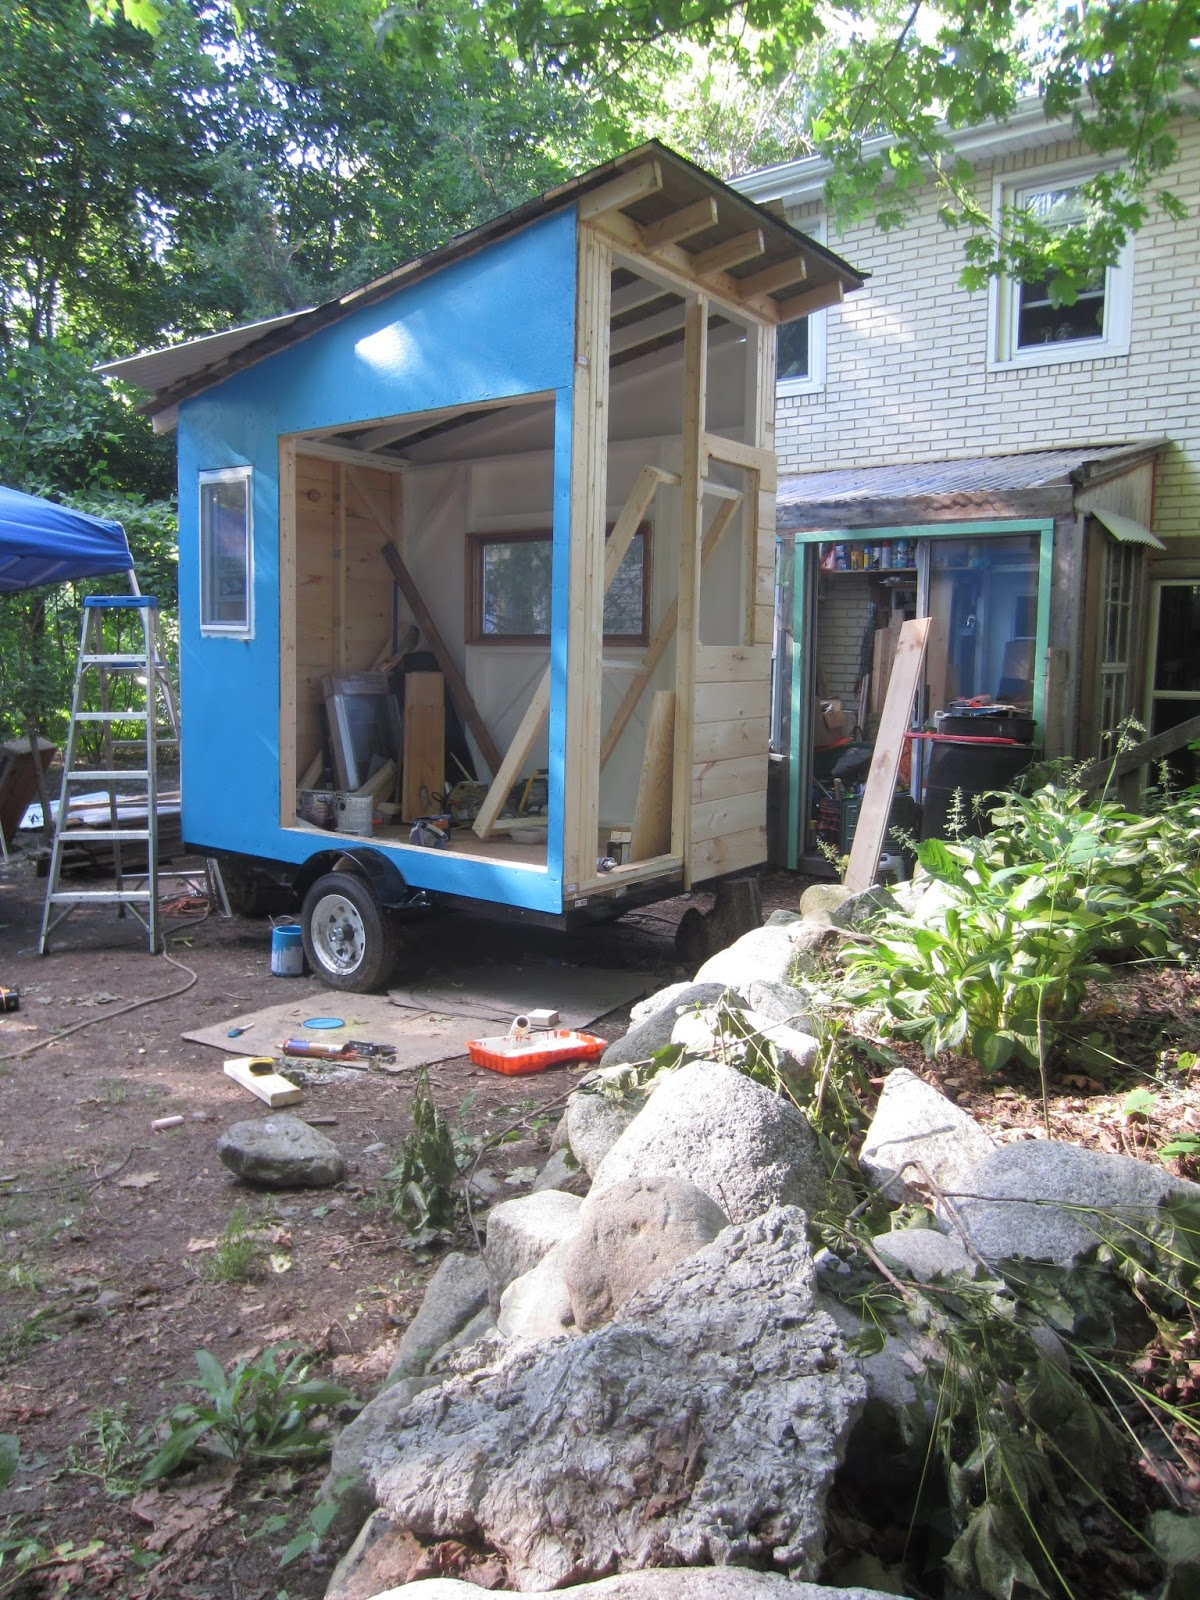 Relaxshackscom Building The Cub a tiny tiny cabin on